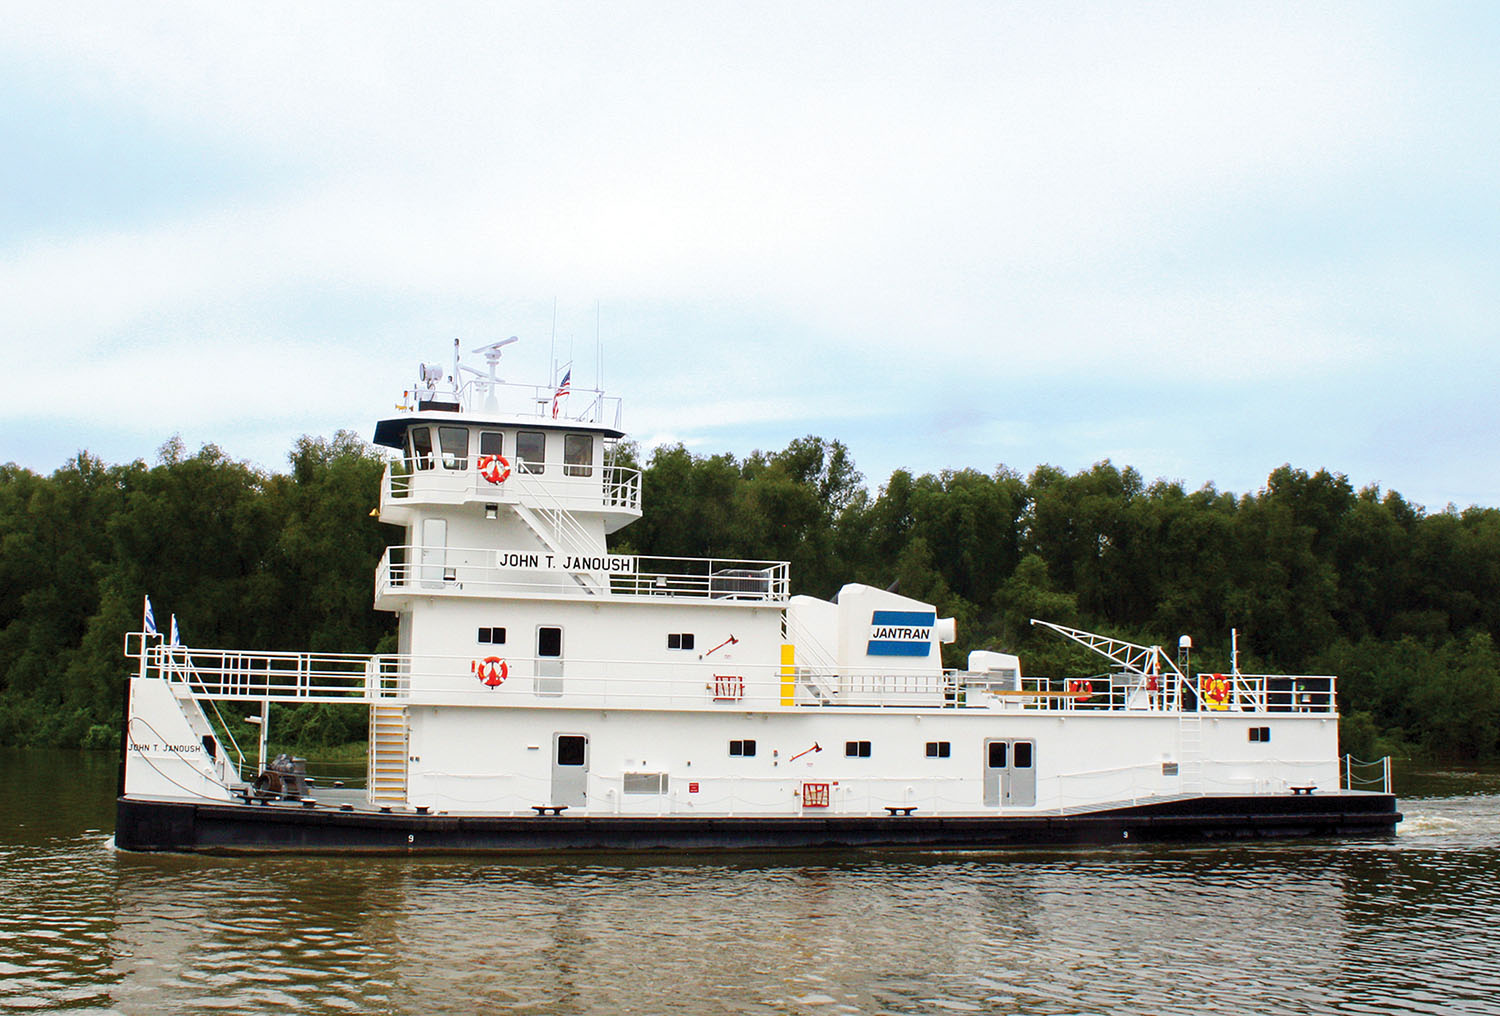 The mv. John T. Janoush, named for JANTRAN's former manager of operations who died of lung cancer last year, is a closed-wheel boat that measures 114 by 35  by 11 feet, with a 9-foot draft. (Photo courtesy of JANTRAN Inc.)